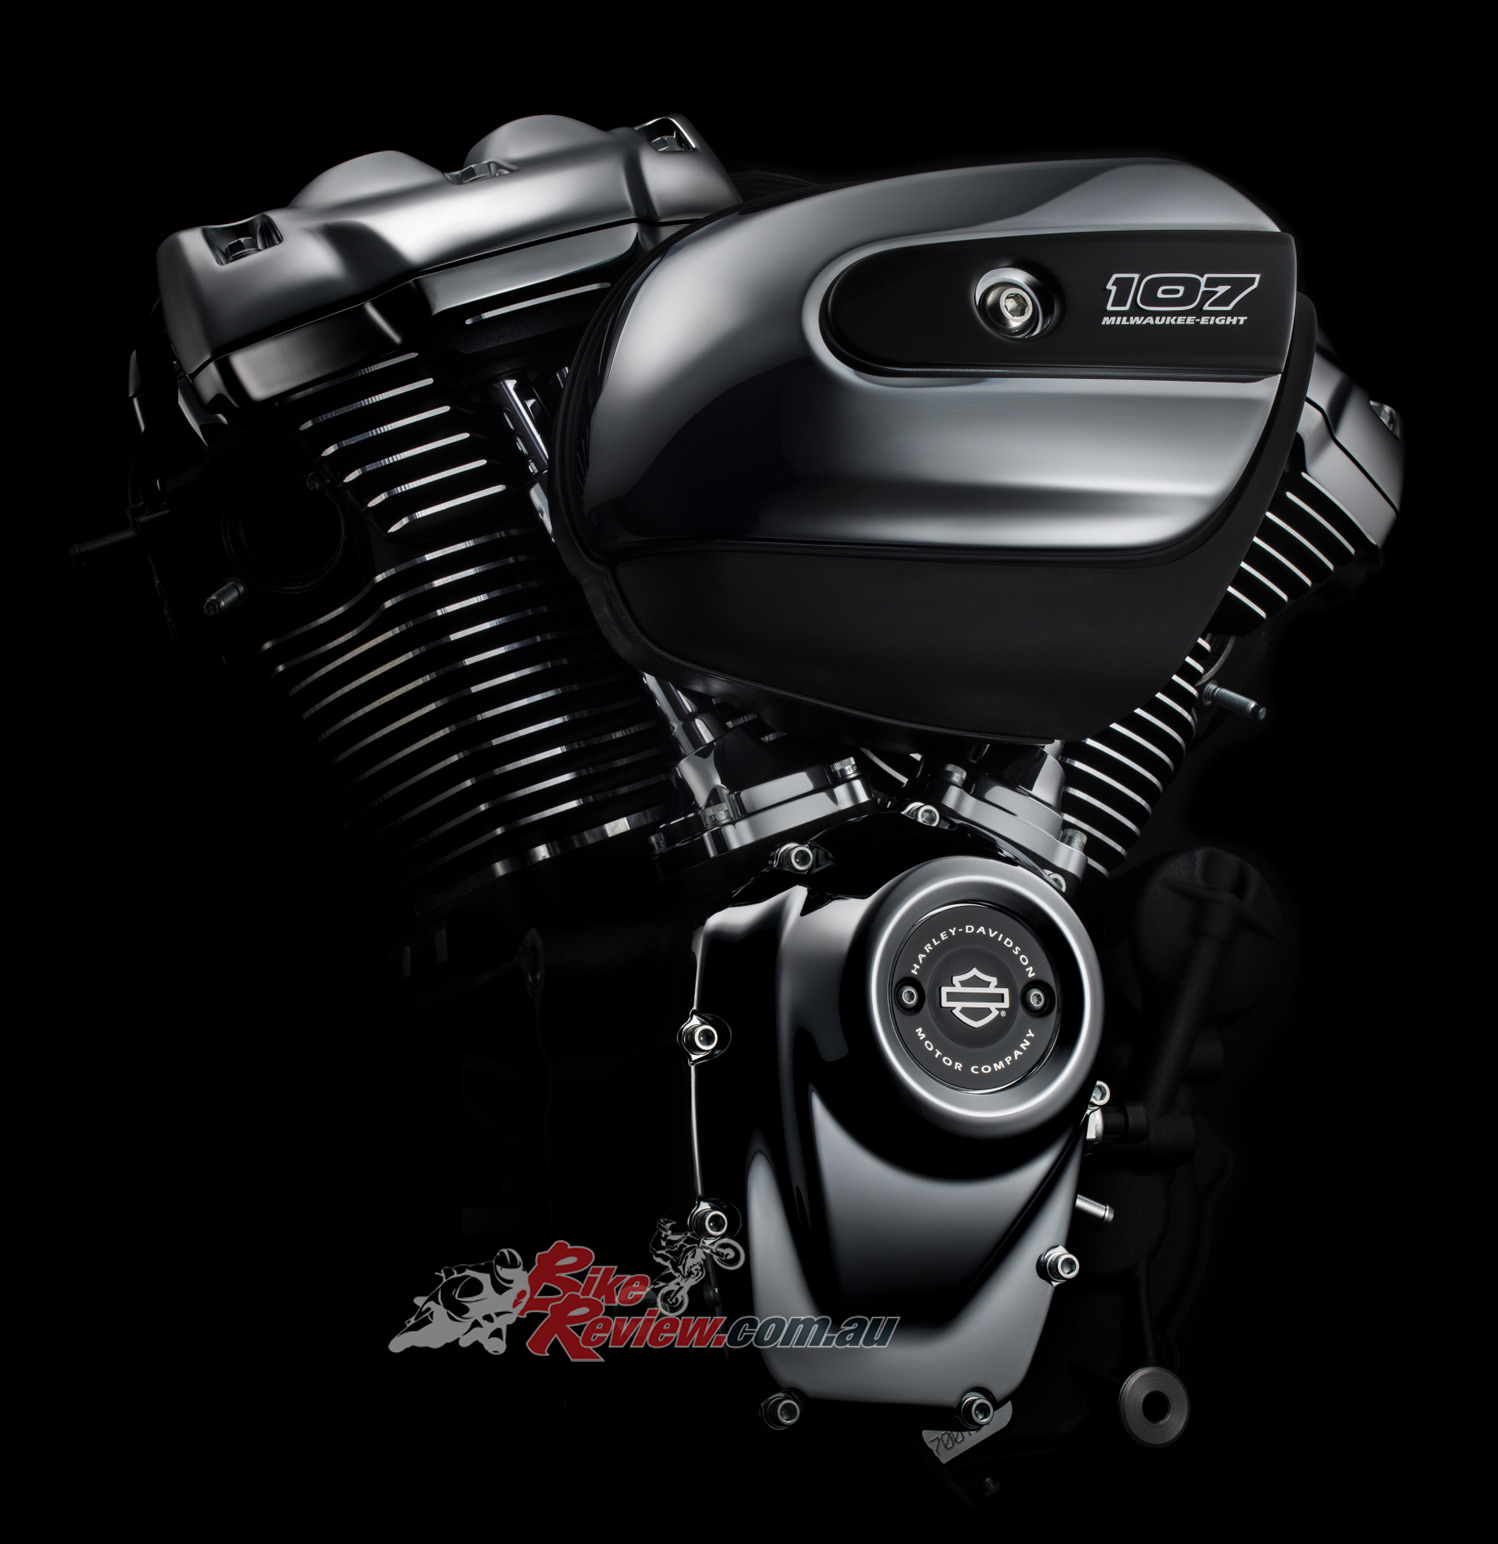 Preview 2017 Harley Davidson Milwaukee Eight Range Bike